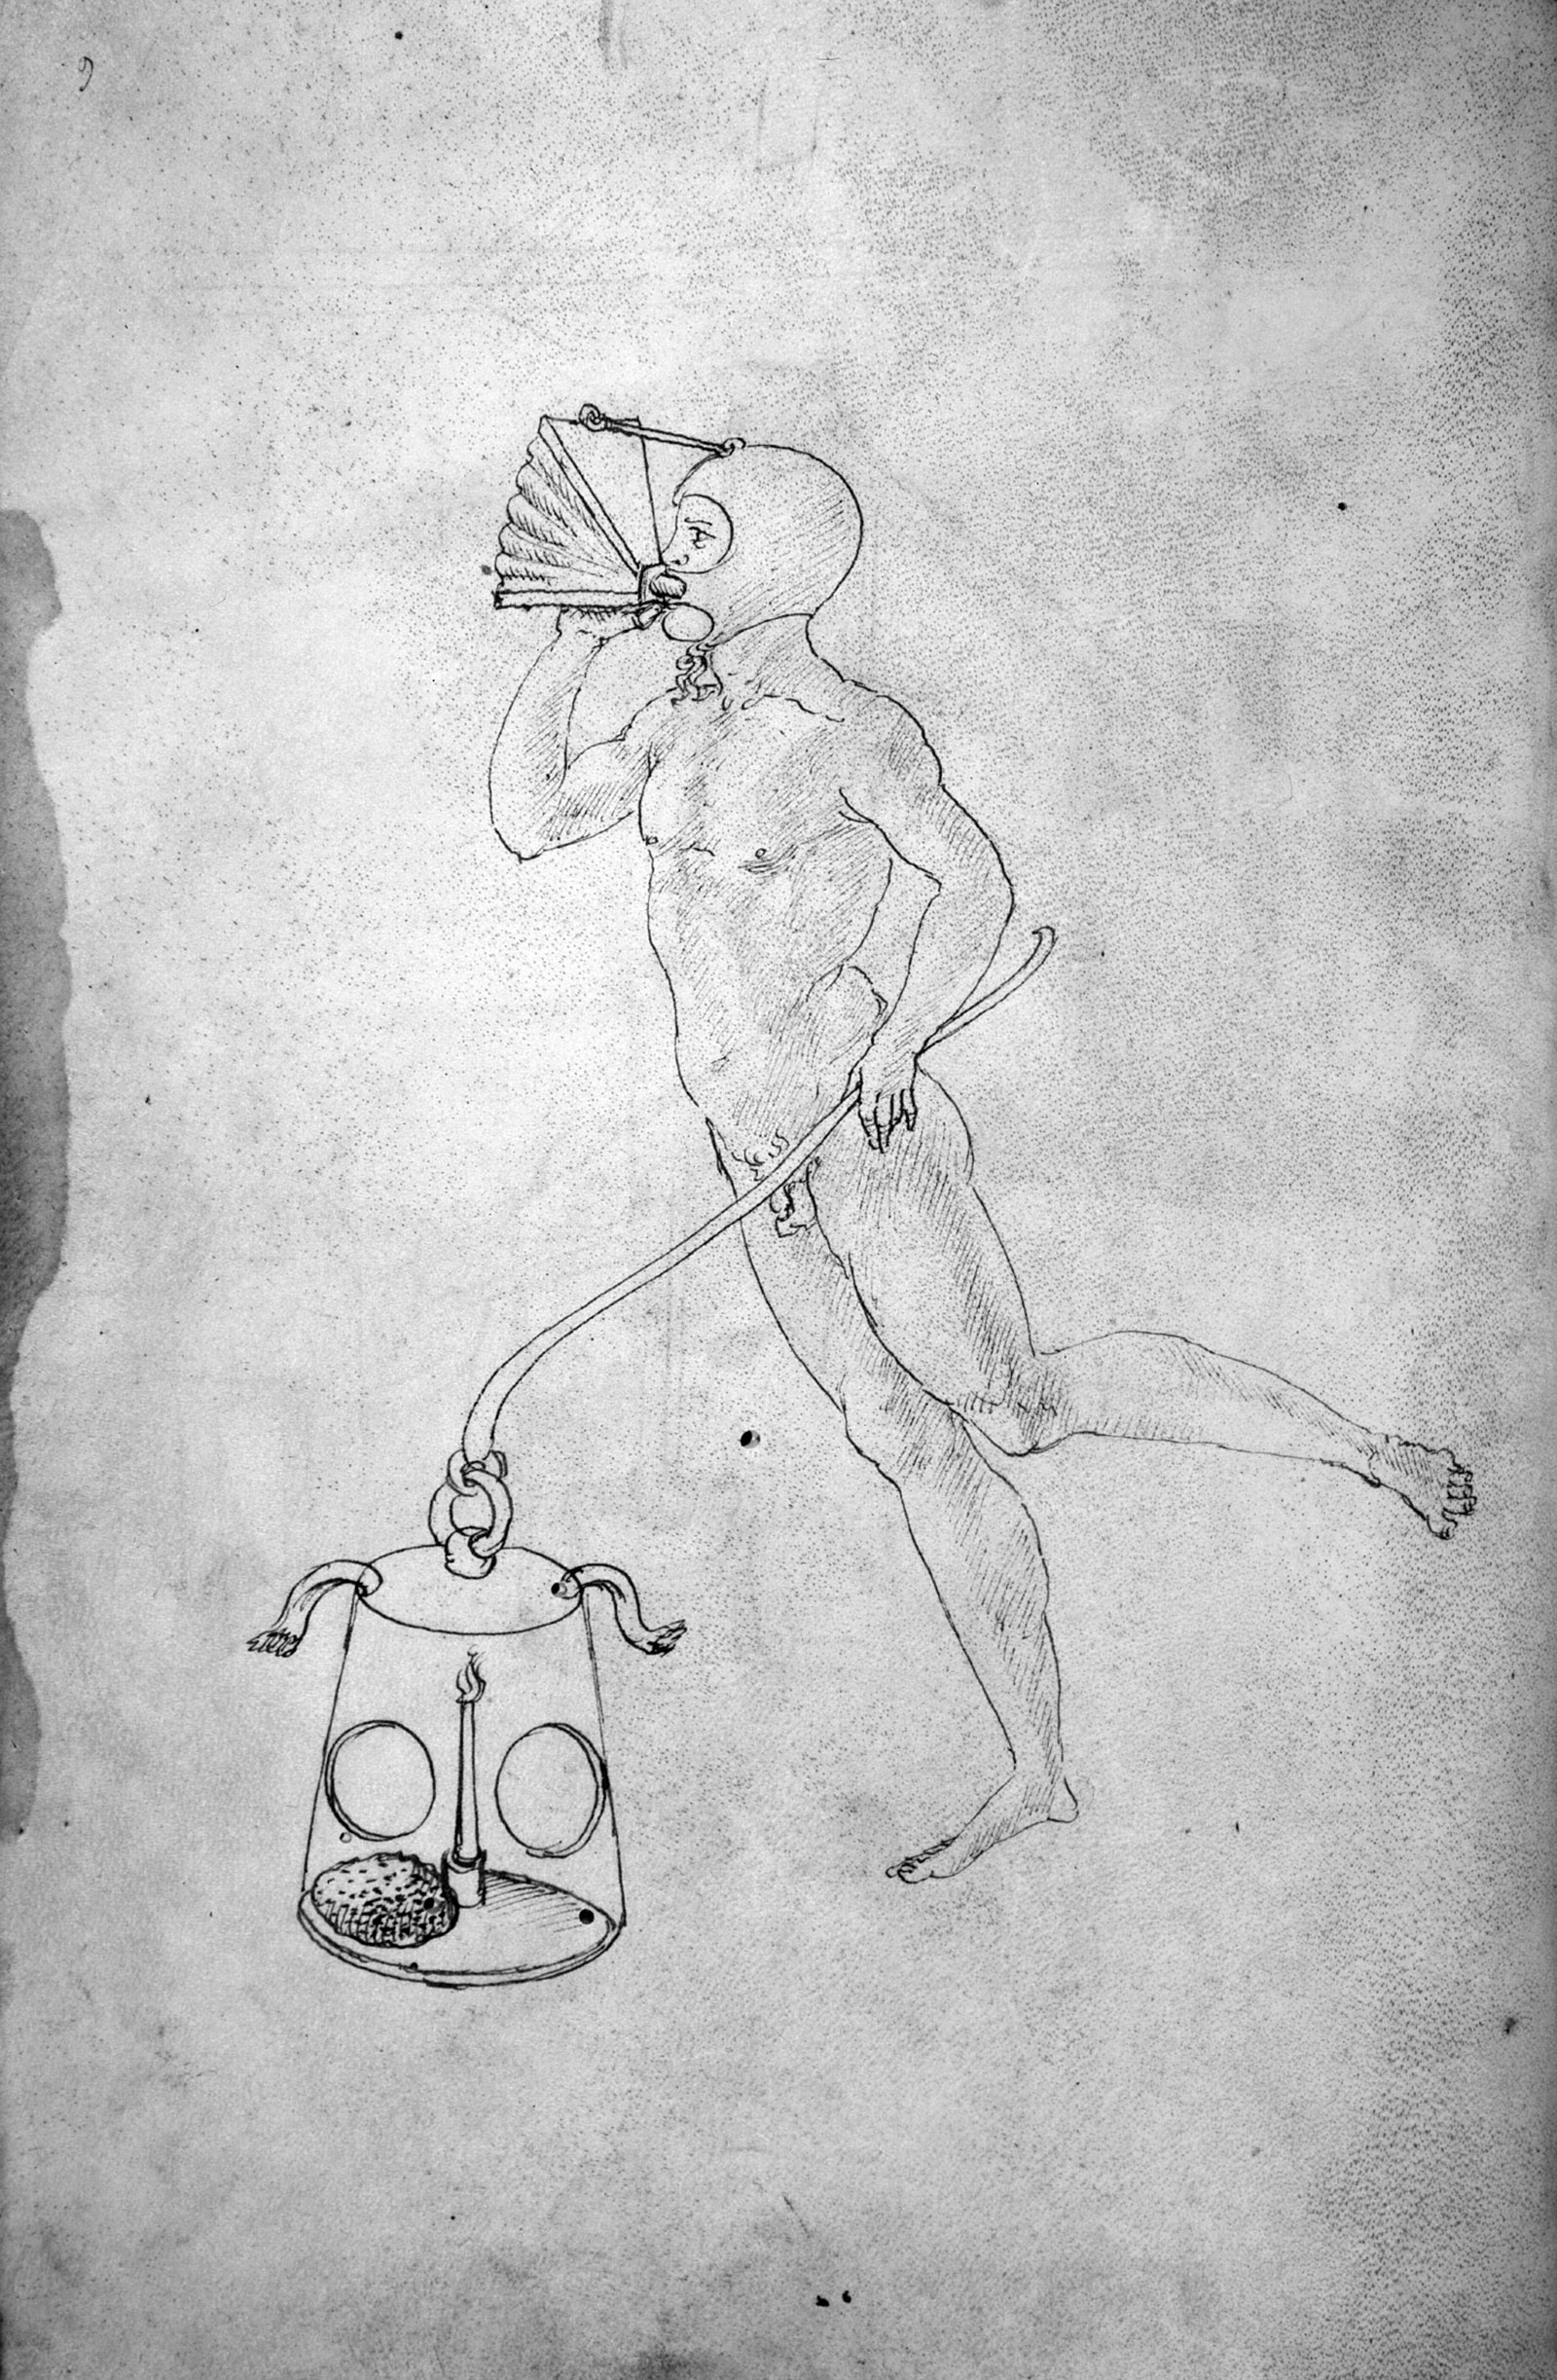 Drawing of a diver with bellows for breathing and a lantern with a sponge and lit candle